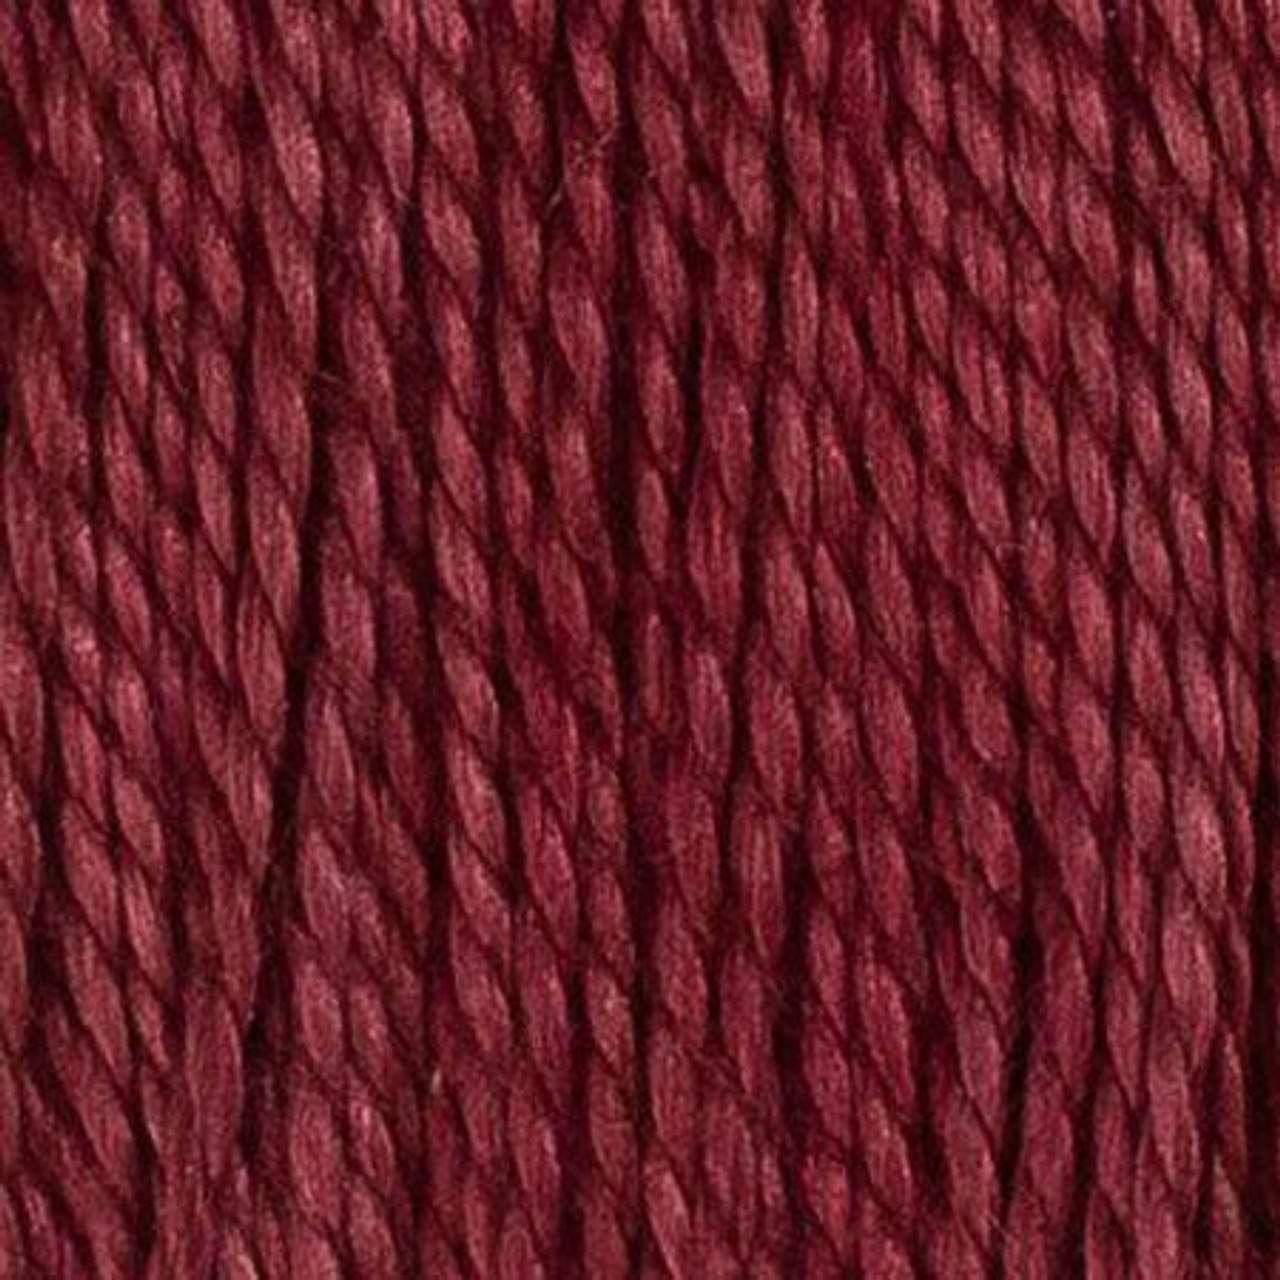 House of Embroidery : 8wt Perle Cotton - Marigold (90B)